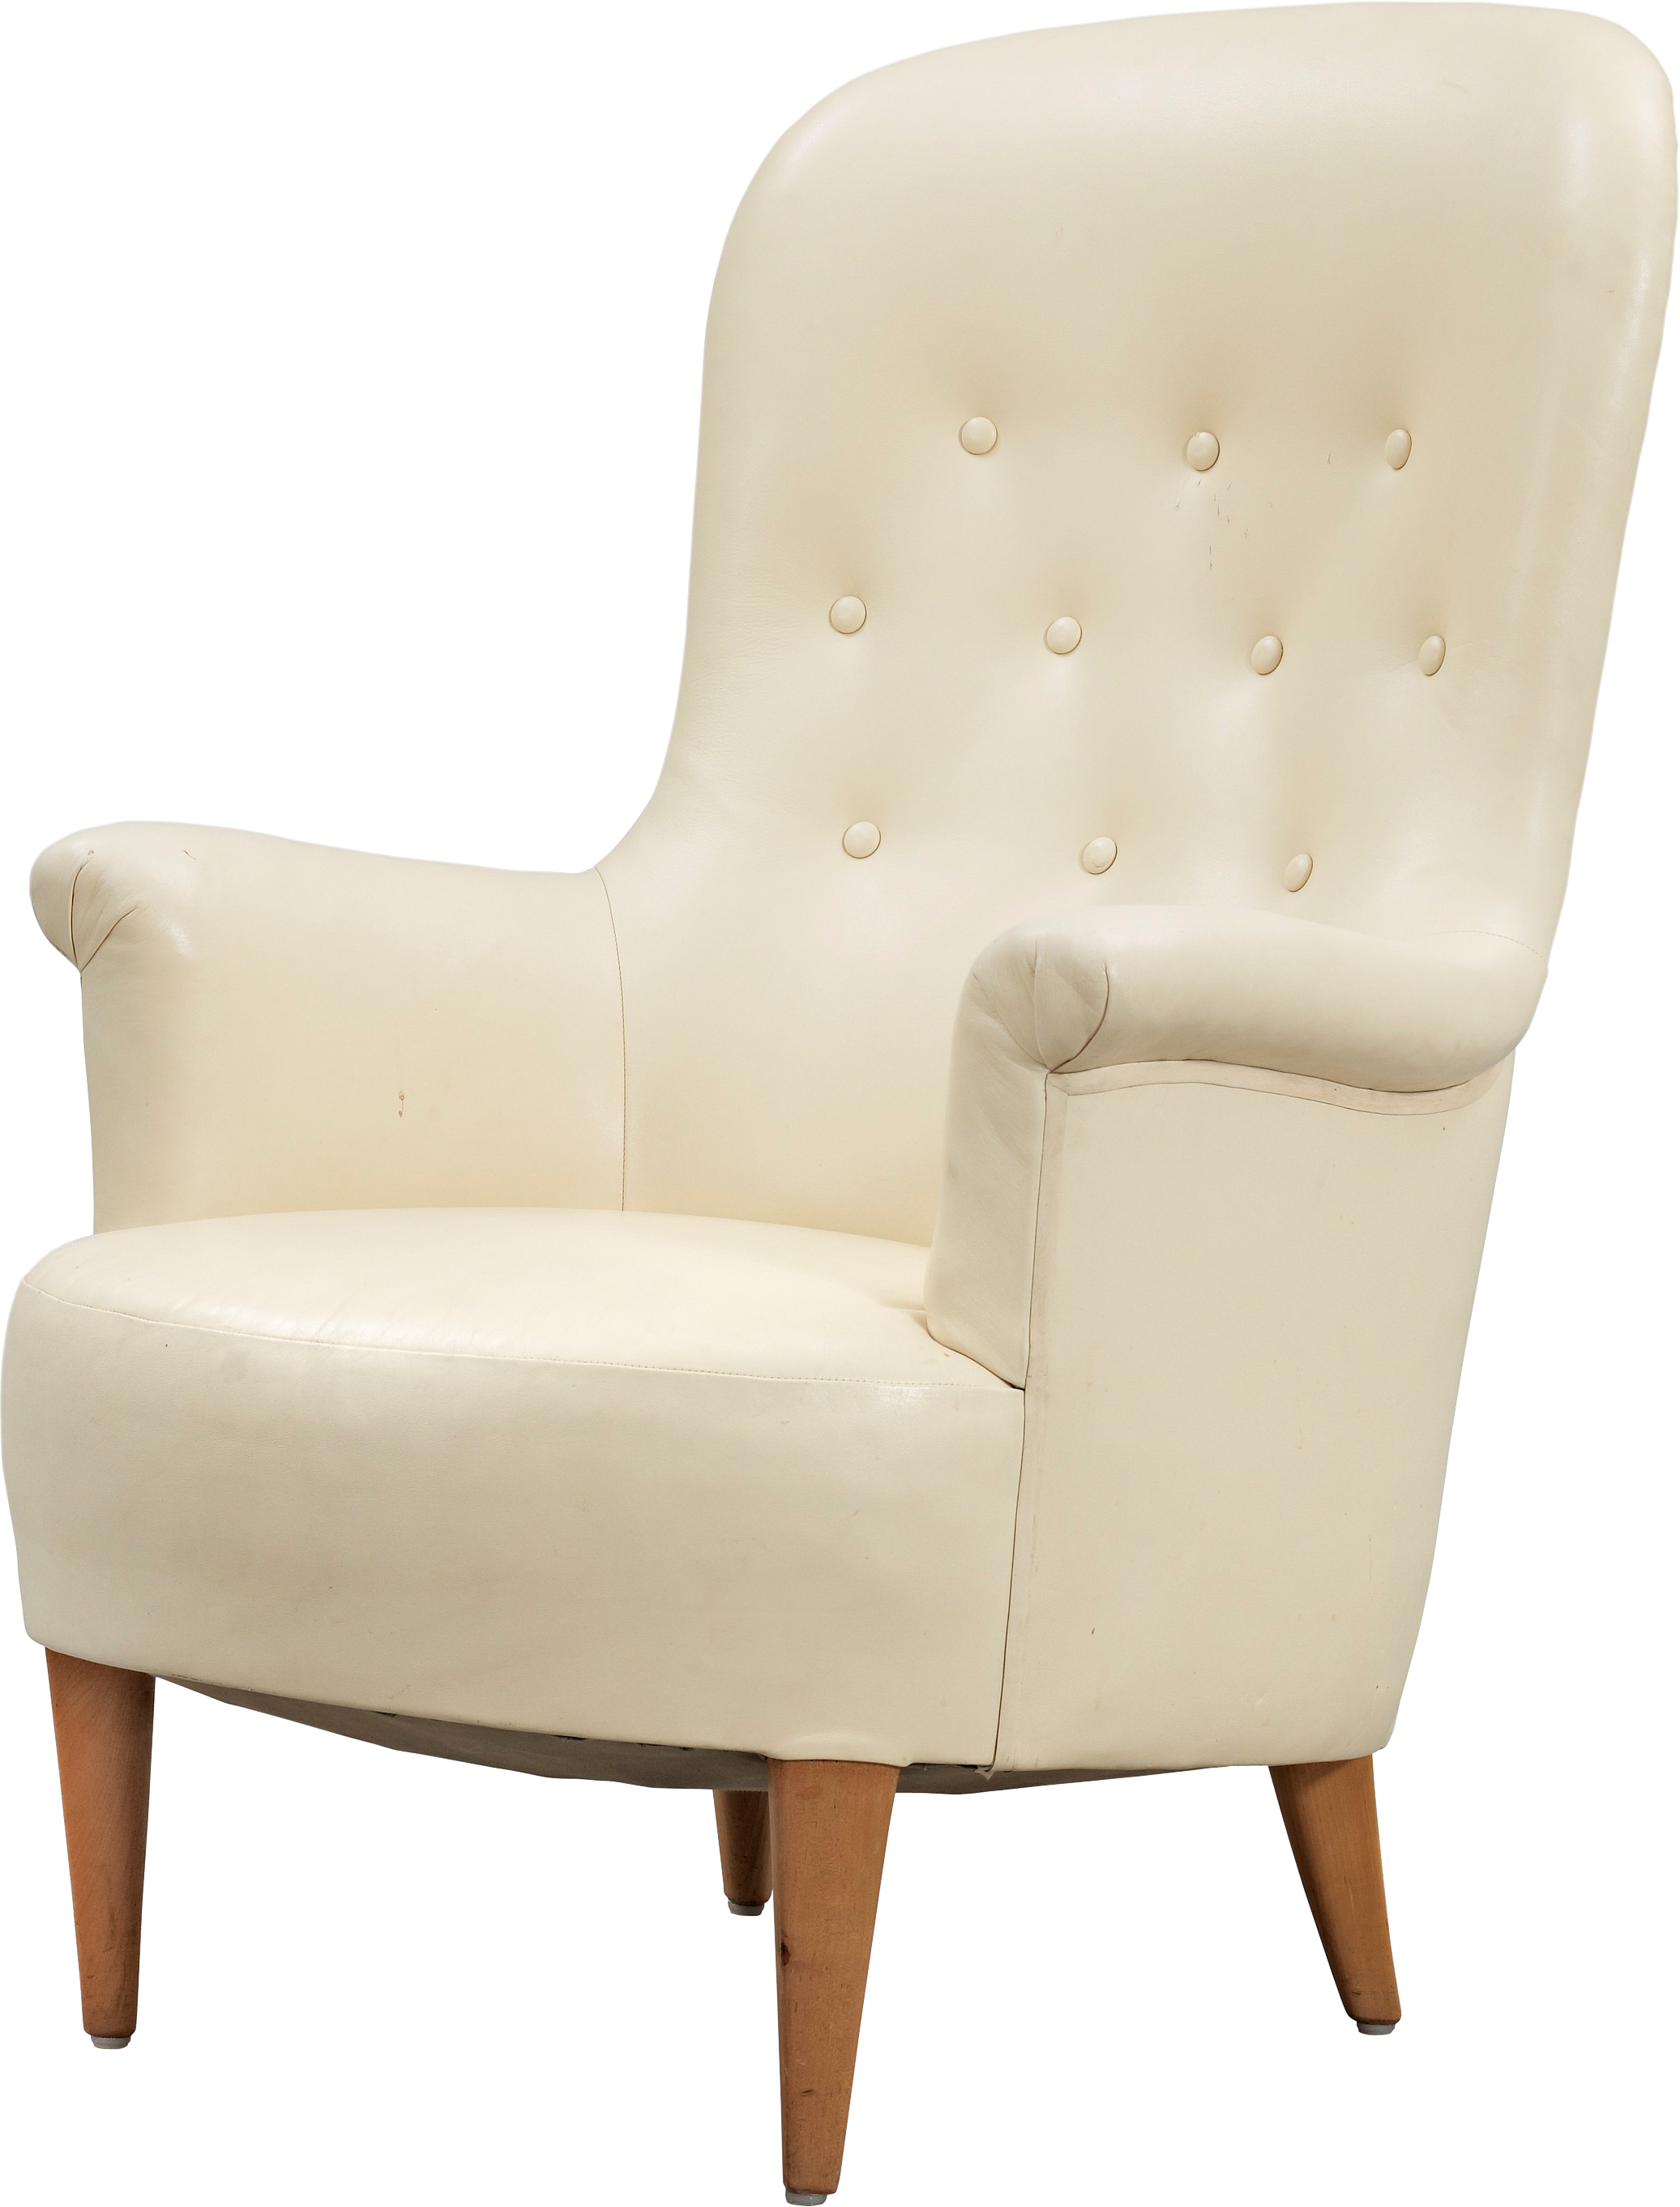 Beau Armchair PNG Image   PurePNG | Free Transparent CC0 PNG Image Library